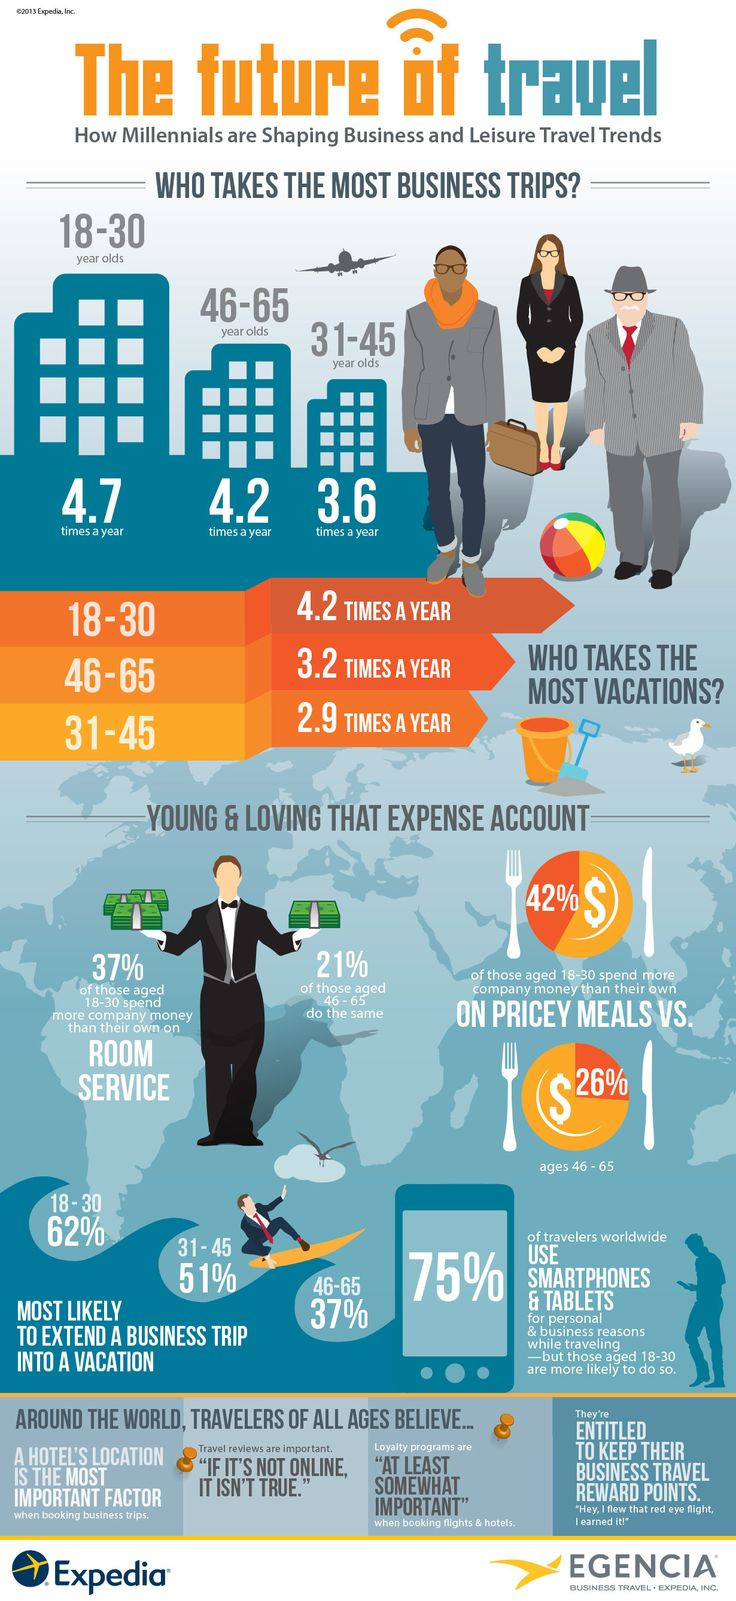 The future of #travel - How Millennials are Shaping Business and Leisure Travel Trends #infographic #expedia